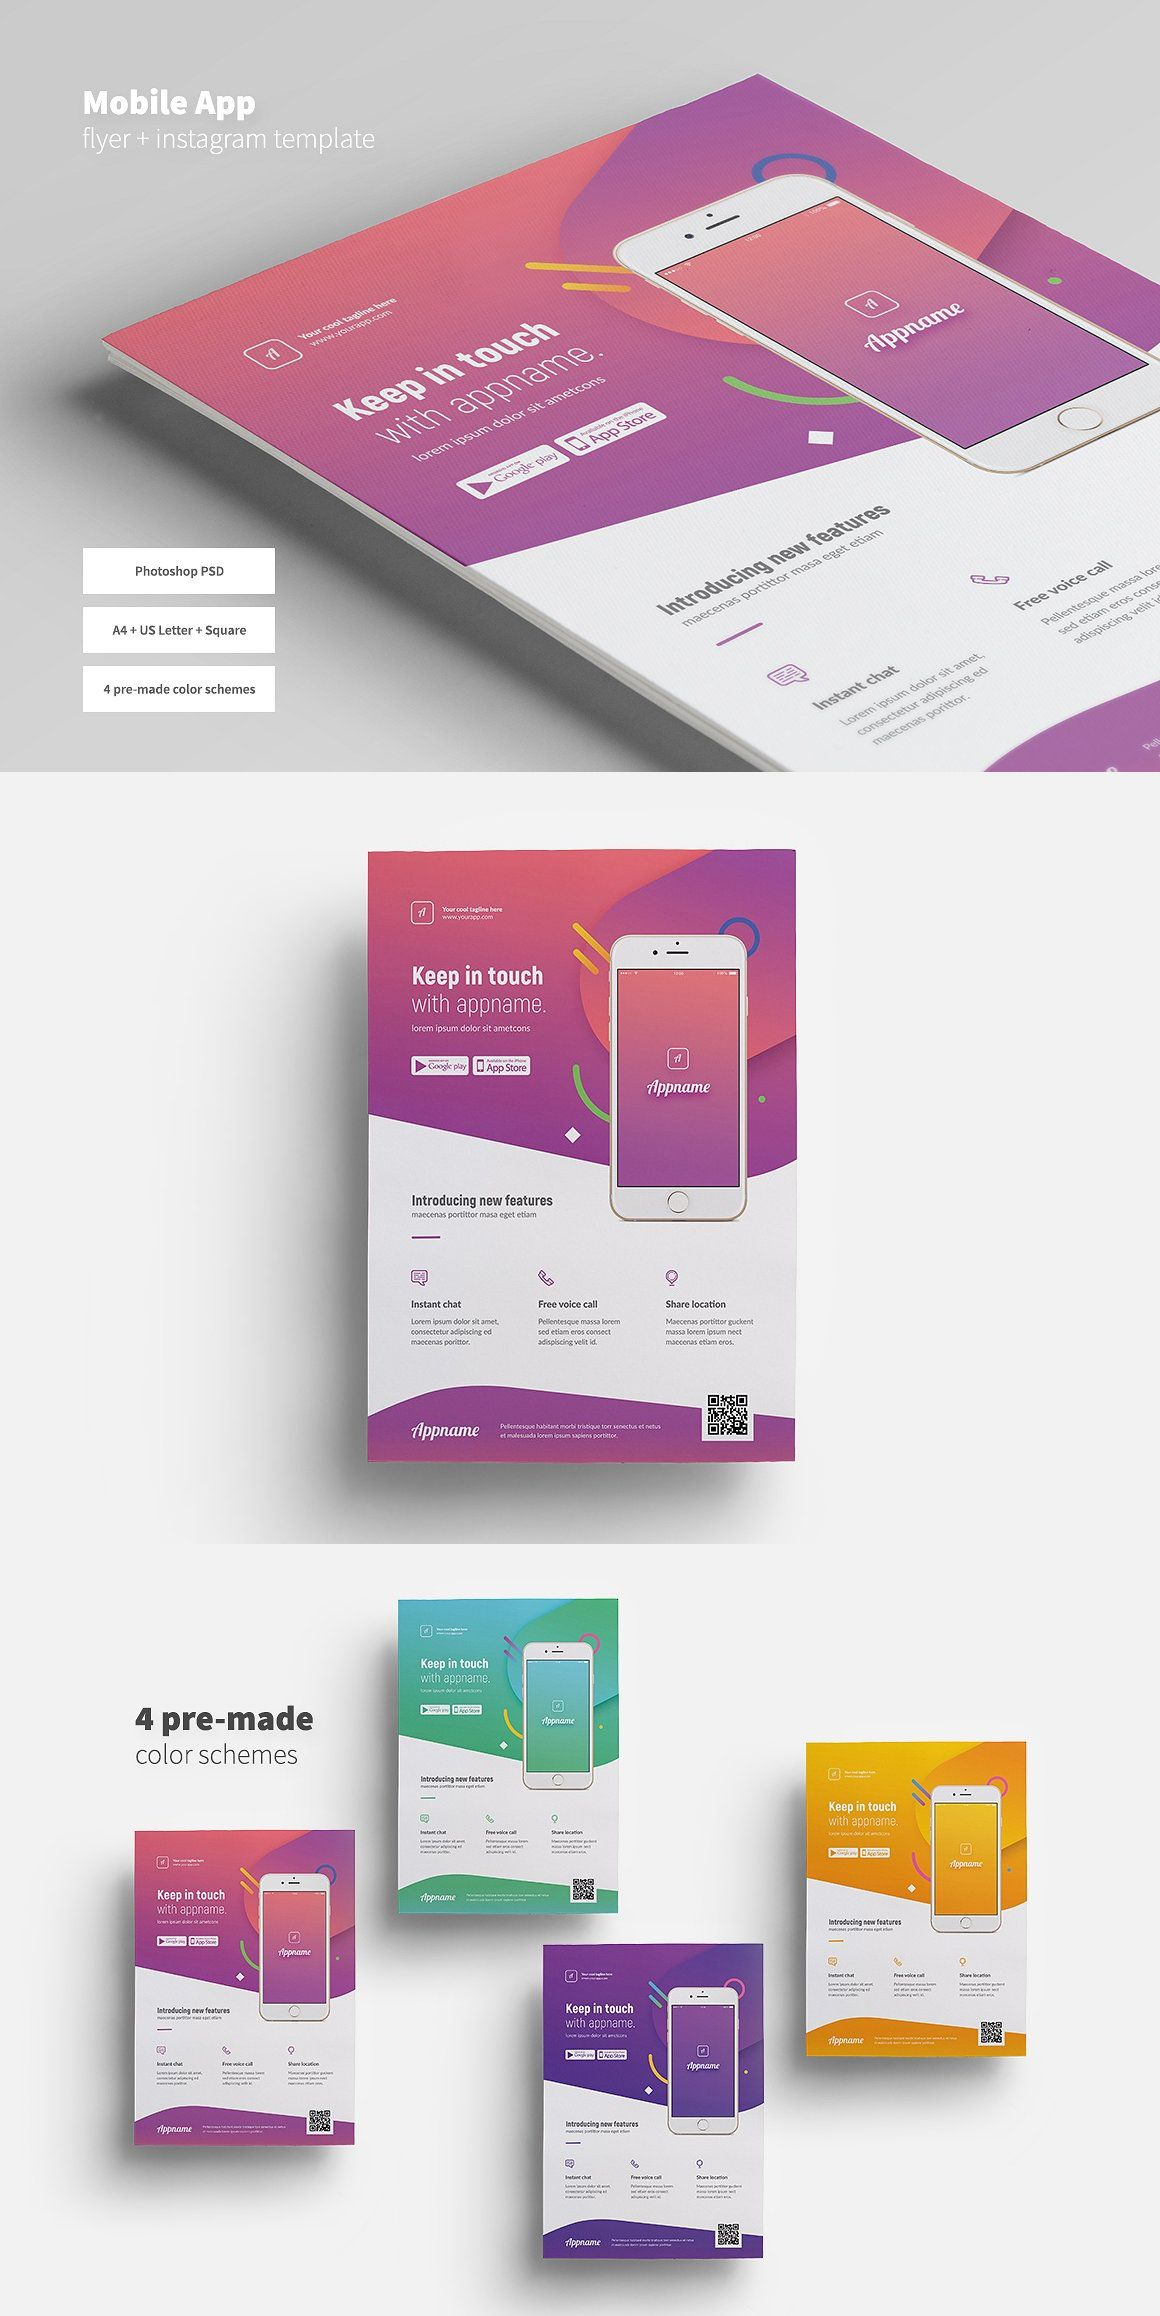 Mobile App Flyer Instagram Template Psd Flyer Templates